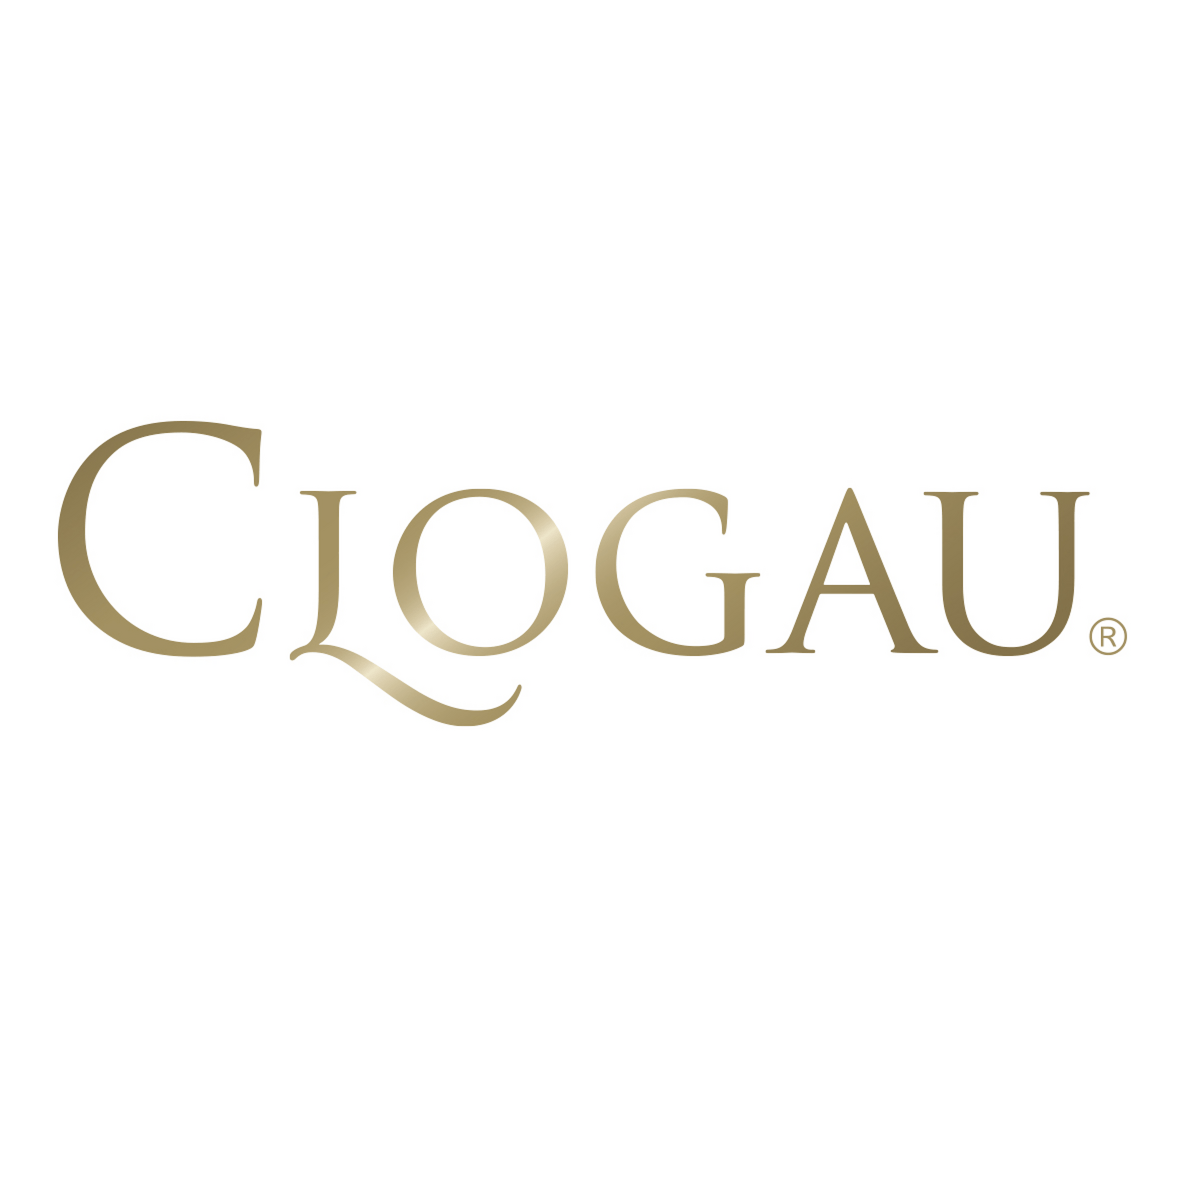 Clogau Gold Ltd